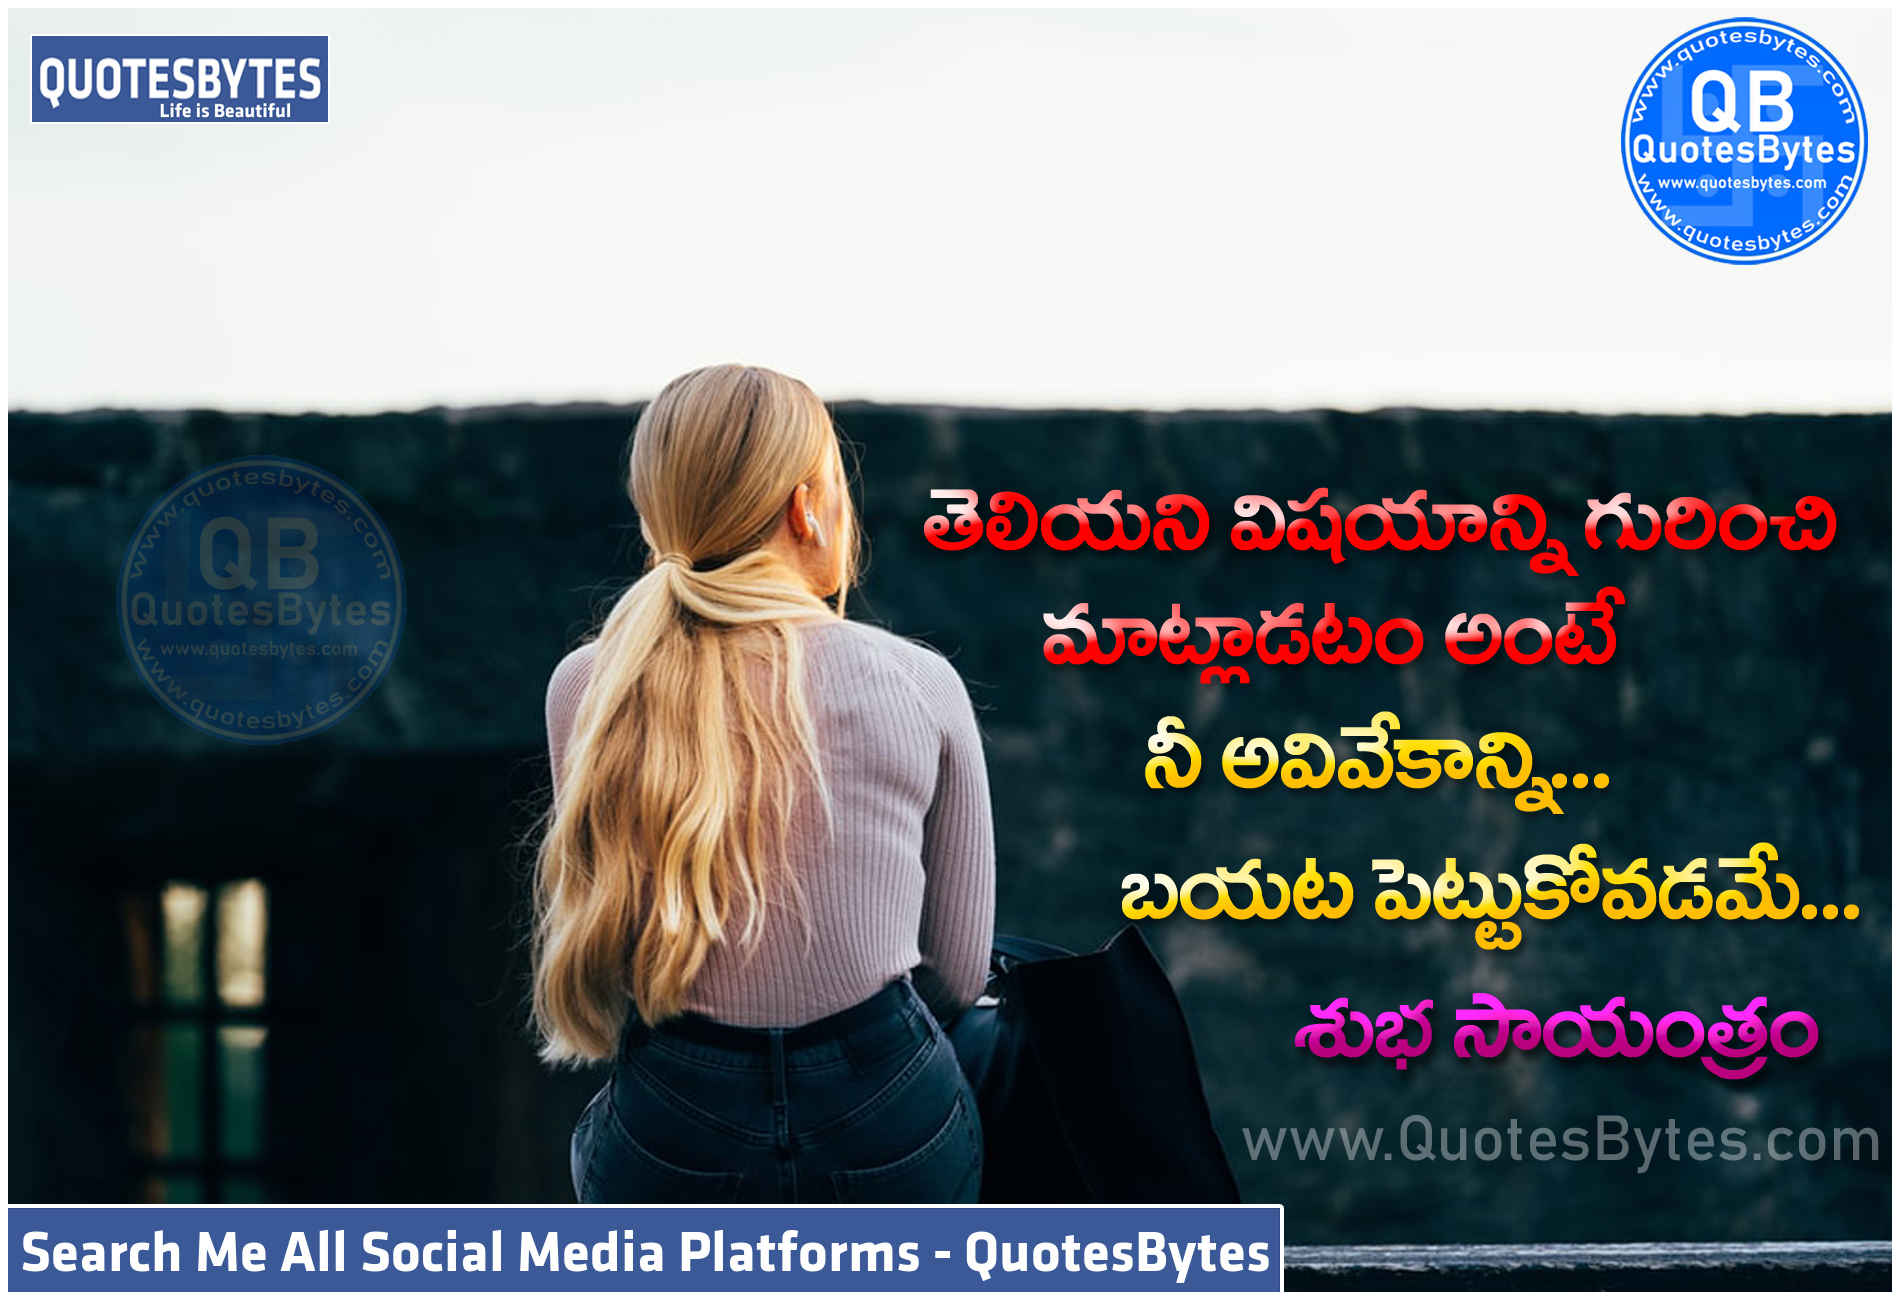 Telugu Good Evening Inspirational Quotes-Good Evening Quotes in Telugu  Good Evening Quotes in Telugu BEST GOOD EVENING QUOTES IN TELUGU – POPULAR TELUGU QUOTES Here are good evening quotes in Telugu text, Telugu good evening kavithalu, good evening quotes to share with friends,Best Telugu Good Evening whatsapp dp, good evening quotes in Telugu for lovers, good evening in the Telugu language, best good evening whatsapp dp,Inspirational Good Evening Quotes in Telugu, download good evening quotes Telugu. good evening quotes in telugu, good evening quotes in Telugu, Telugu good evening images, and also good evening images in Telugu,status quotes in telugu greetings and wishes,status Quotes, Telugu good evening quotes, good evening wishes in Telugu, good evening messages in Telugu ,Telugu good evening SMS and status ,good evening quotes, wishes in telugu,Best Telugu Quotes and Good Evening Quotes,TELUGU QUOTES GOOD EVENING QUOTES, evening wishes, great evening wishes.good evening quotes, wishes in telugu, Best good evening pics, quotes,Telugu Good Evening Quotes for Facebook whatsapp dp,status,Facebook good Evening Quotes with Images, images and sayings, NEW HD wallpapers best images, Good evening Telugu NEW cute and awesome images and wallpapers in HD Good evening Telugu, Telugu WhatsApp, Best And Top Good Evening In Telugu, Images, Quotes, Messages, Wishes. If you Are searching for good evening quotes in Telugu, Telugu good evening images, and also good evening images in Telugu, Telugu good evening quotes, good evening wishes in Telugu, good evening messages in Telugu and Telugu good evening sms and status,good evening messages in telugu,Good Evening Quotes in Telugu,Telugu Good Evening Quotes for Whatsapp Status, Telugu Good Evening Messages for whatsapp dp,status,Telugu Good Evening Quotes for Whatsapp Status,Top Good Evening Quotes in Telugu,TELUGU GOOD EVENING QUOTES FOR WHATSAPP STATUS,Telugu Good Evening Quotes for Whatsapp Status,Telugu Good Evening Quotes for 